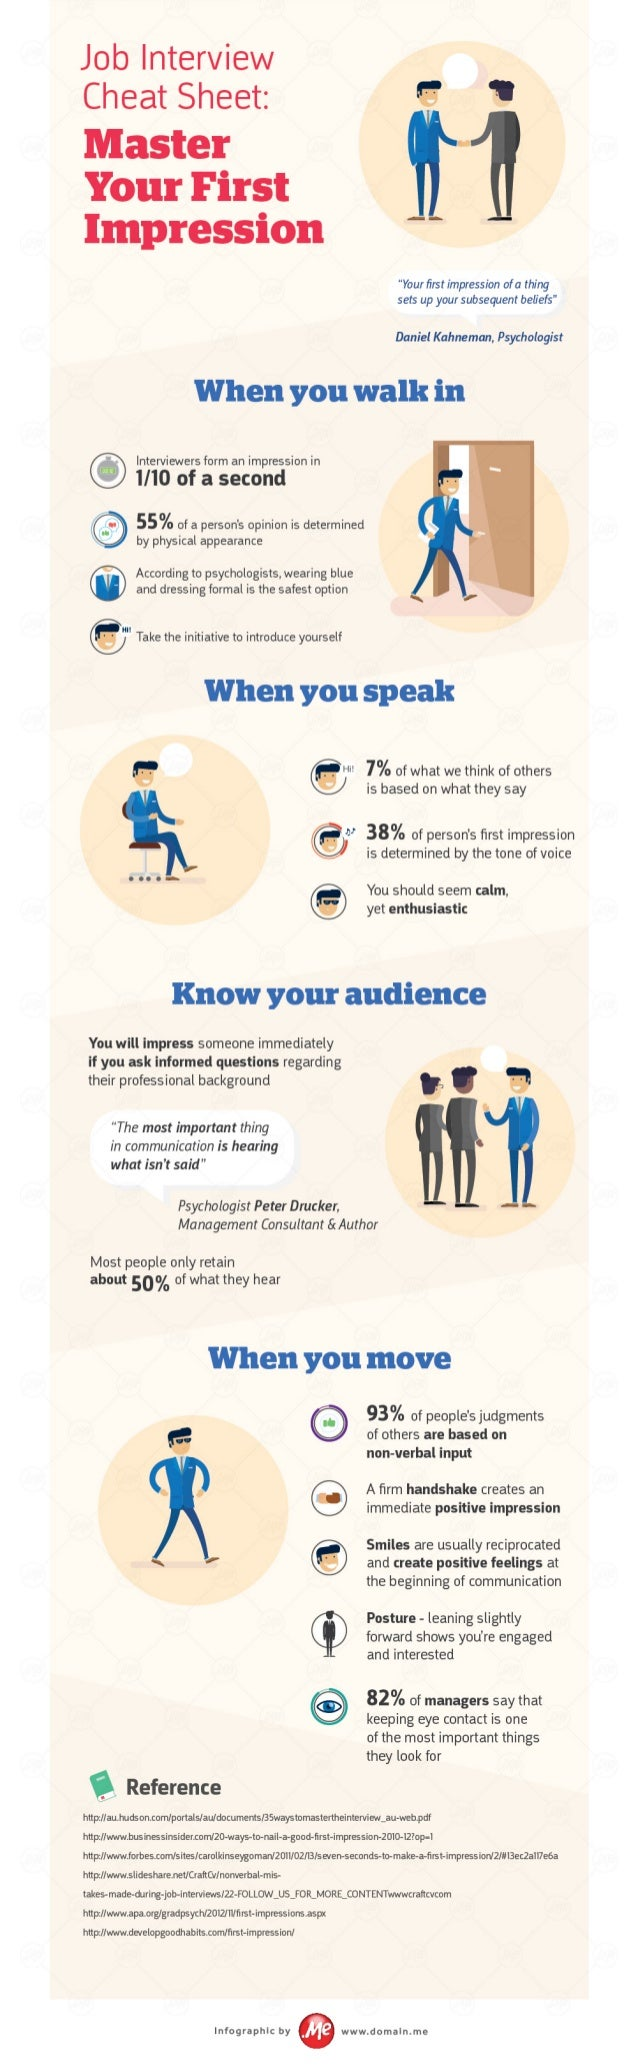 INFOGRAPHIC: Job Interview Cheat Sheet – Master Your First Impression